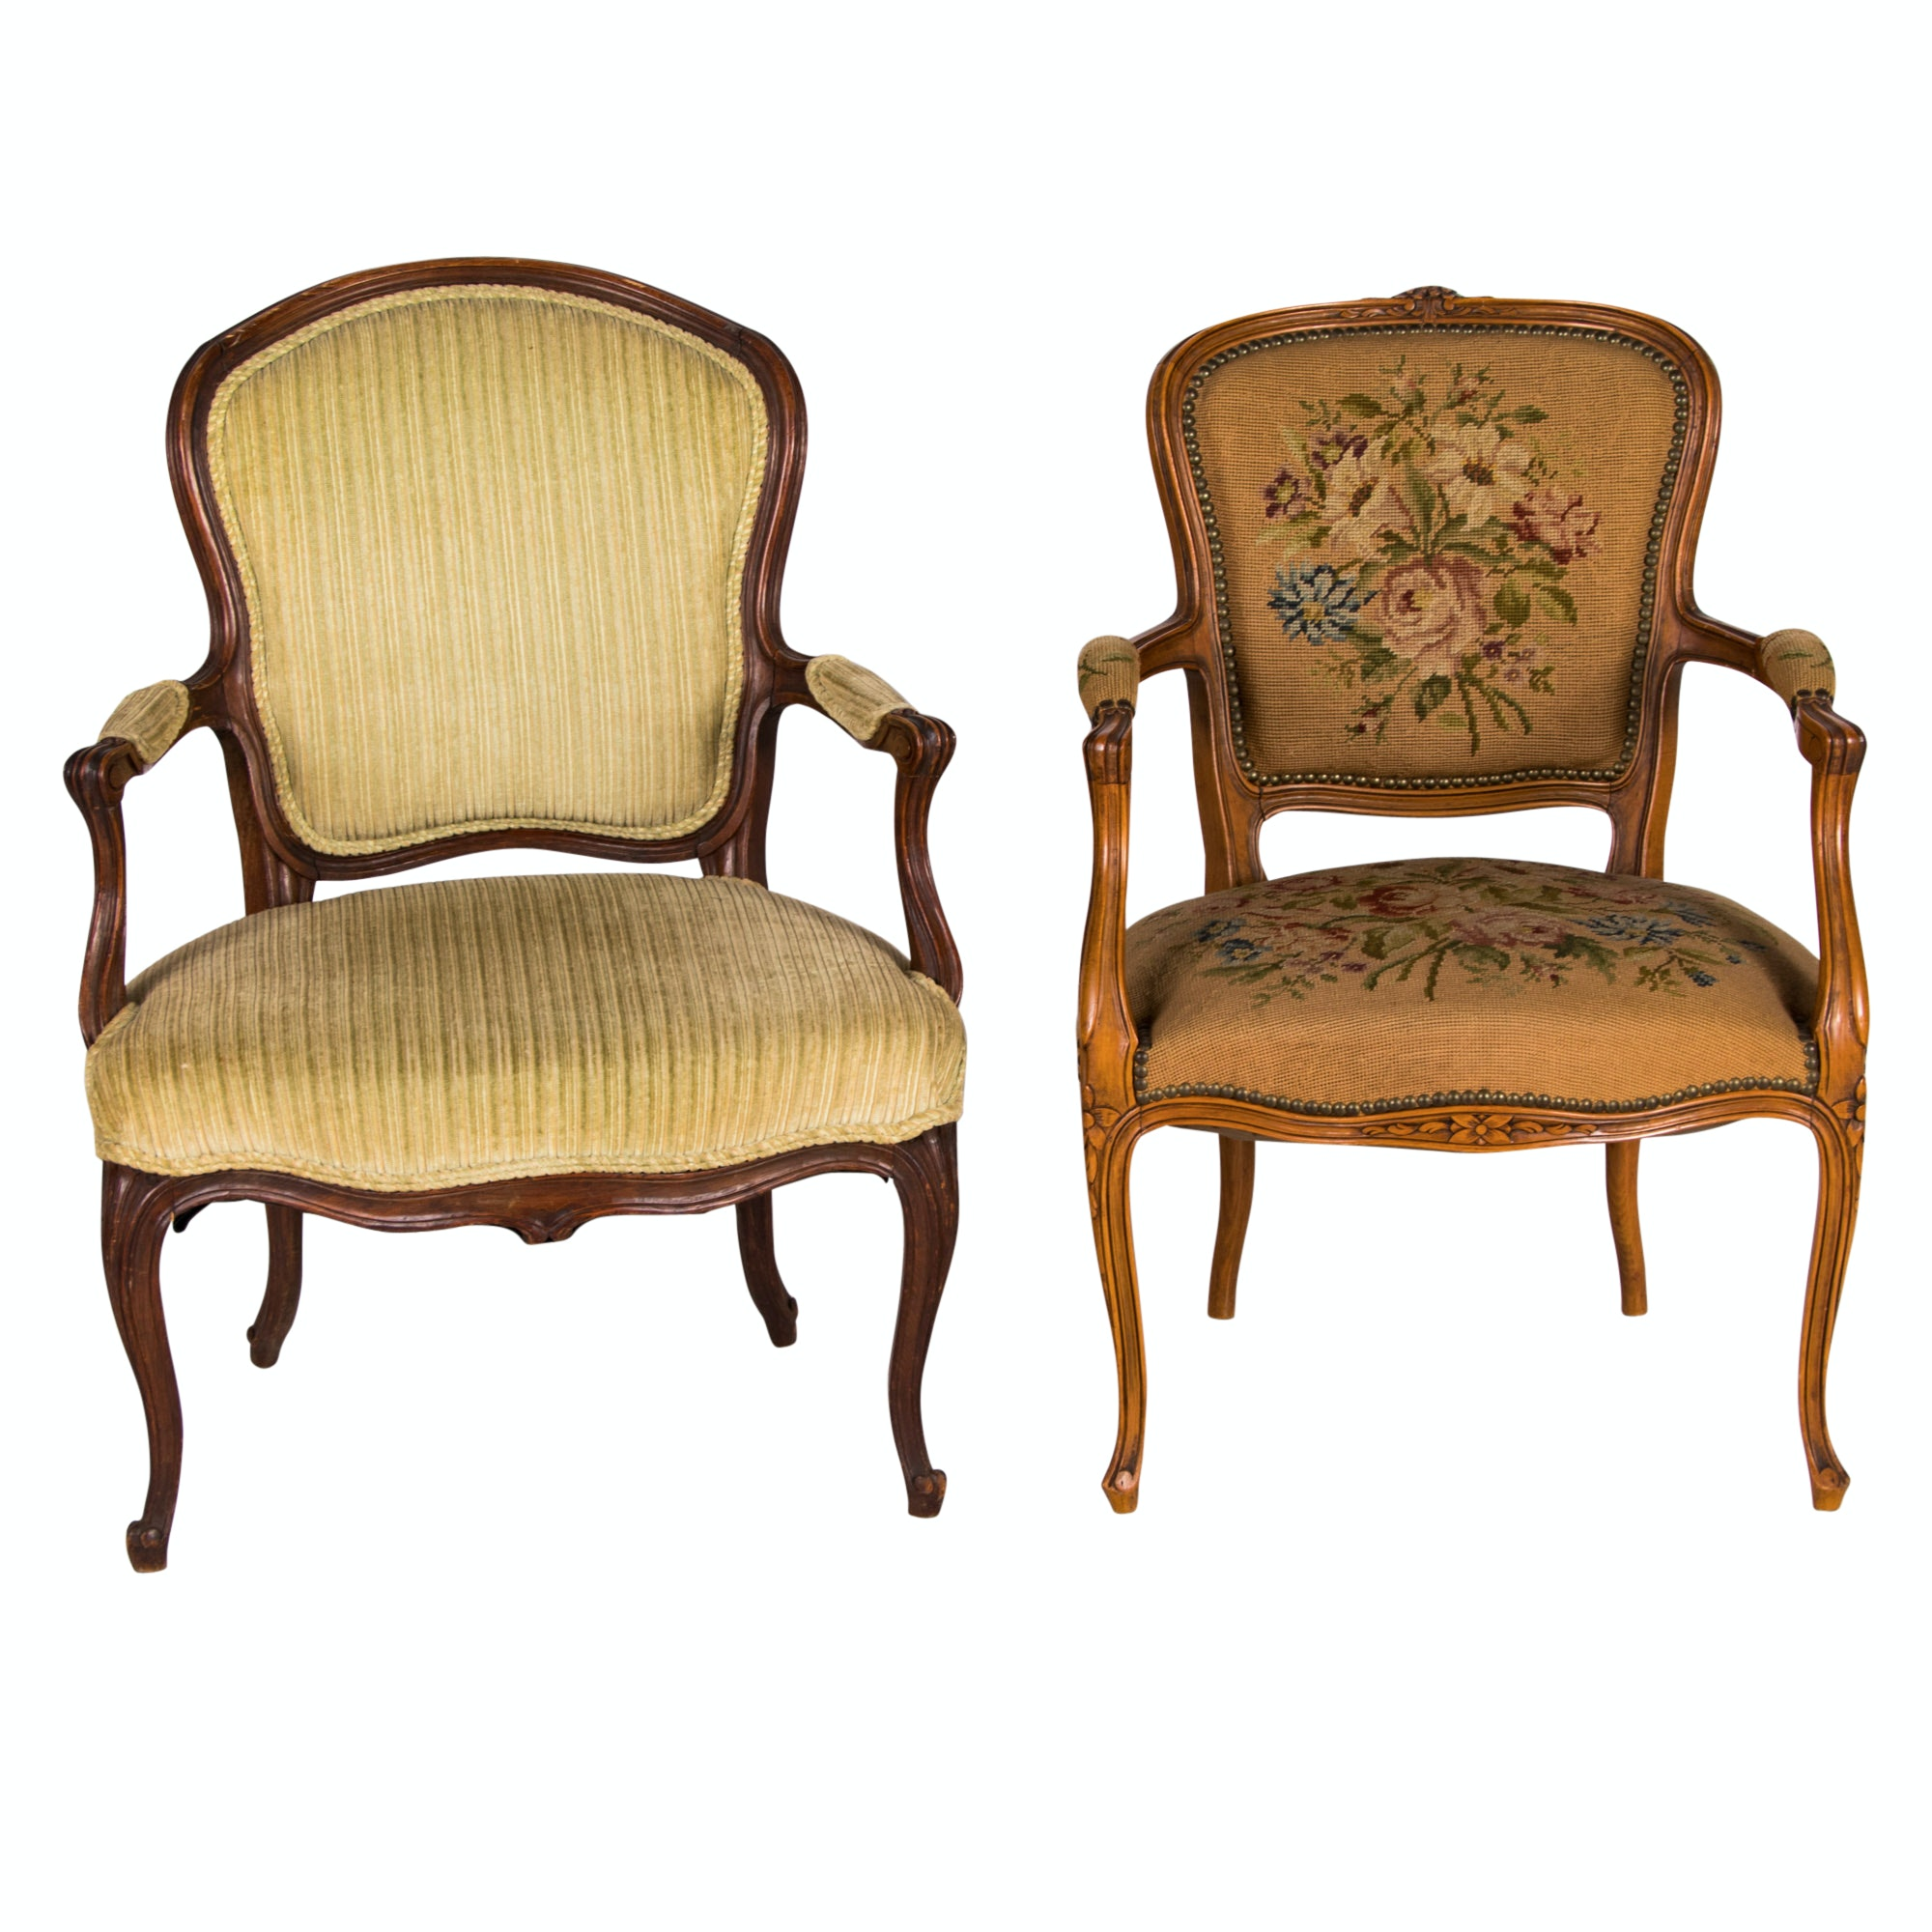 Two Louis XV Style Carved Beech Fauteuils, Late 19th/ Early 20th Century